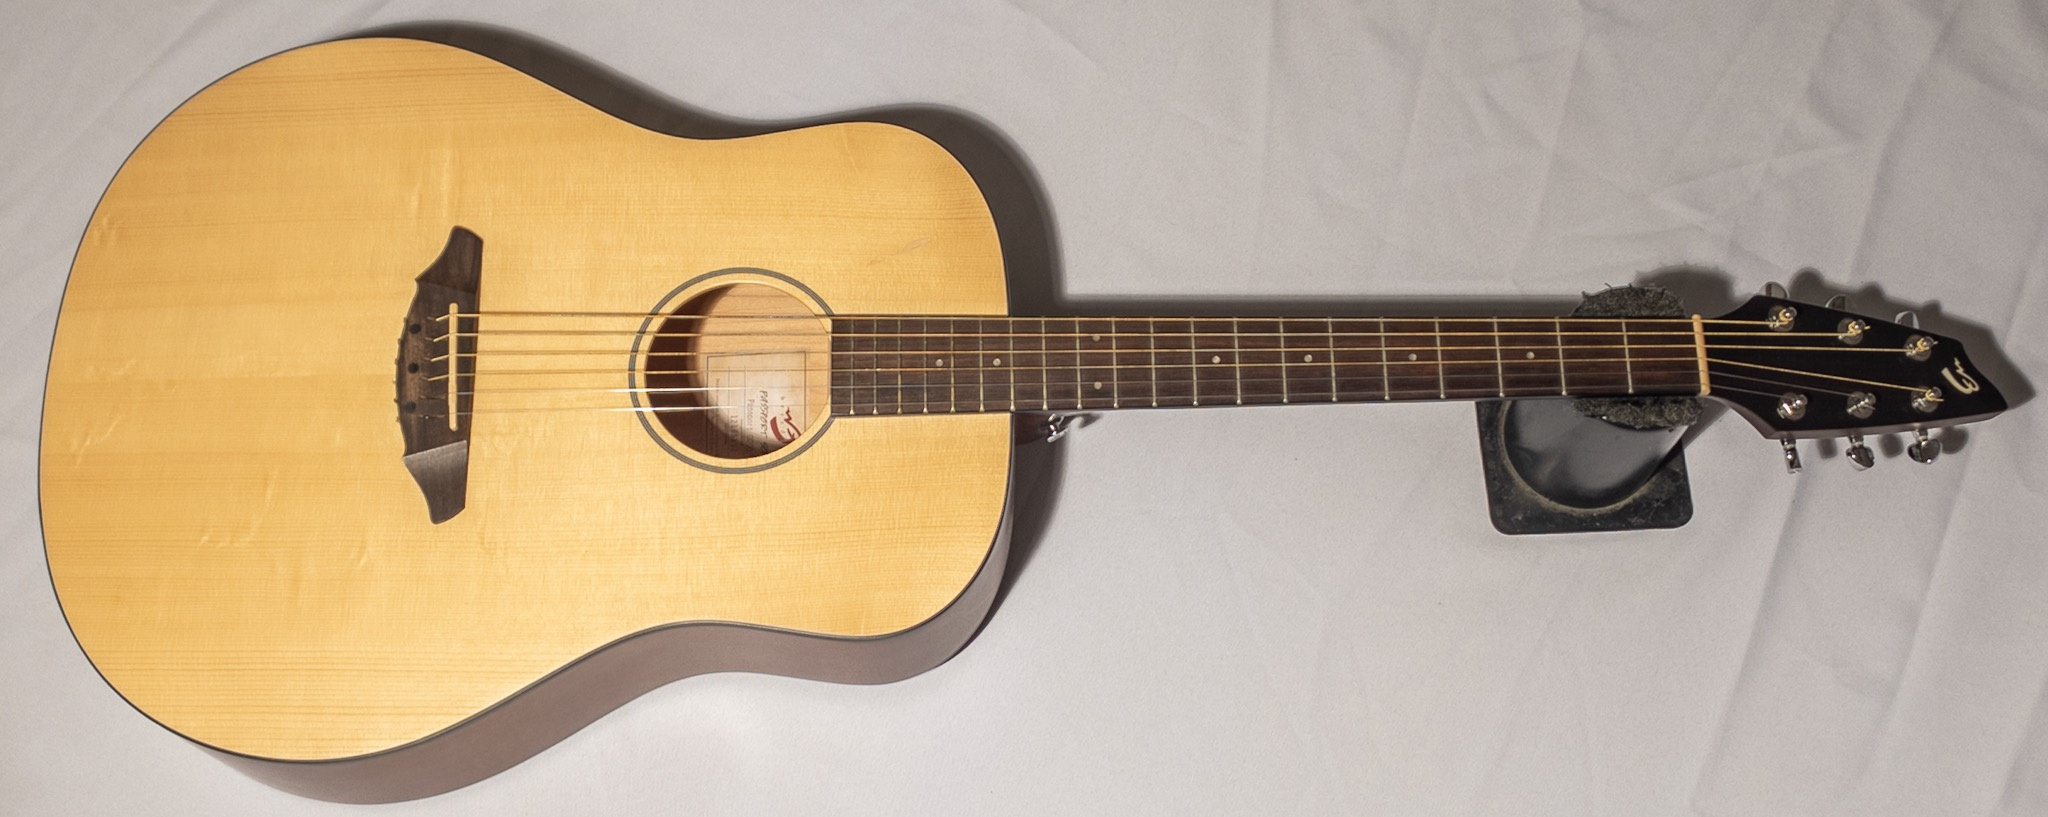 breedlove passport d200 acoustic guitar south austin music new used and vintage instruments. Black Bedroom Furniture Sets. Home Design Ideas